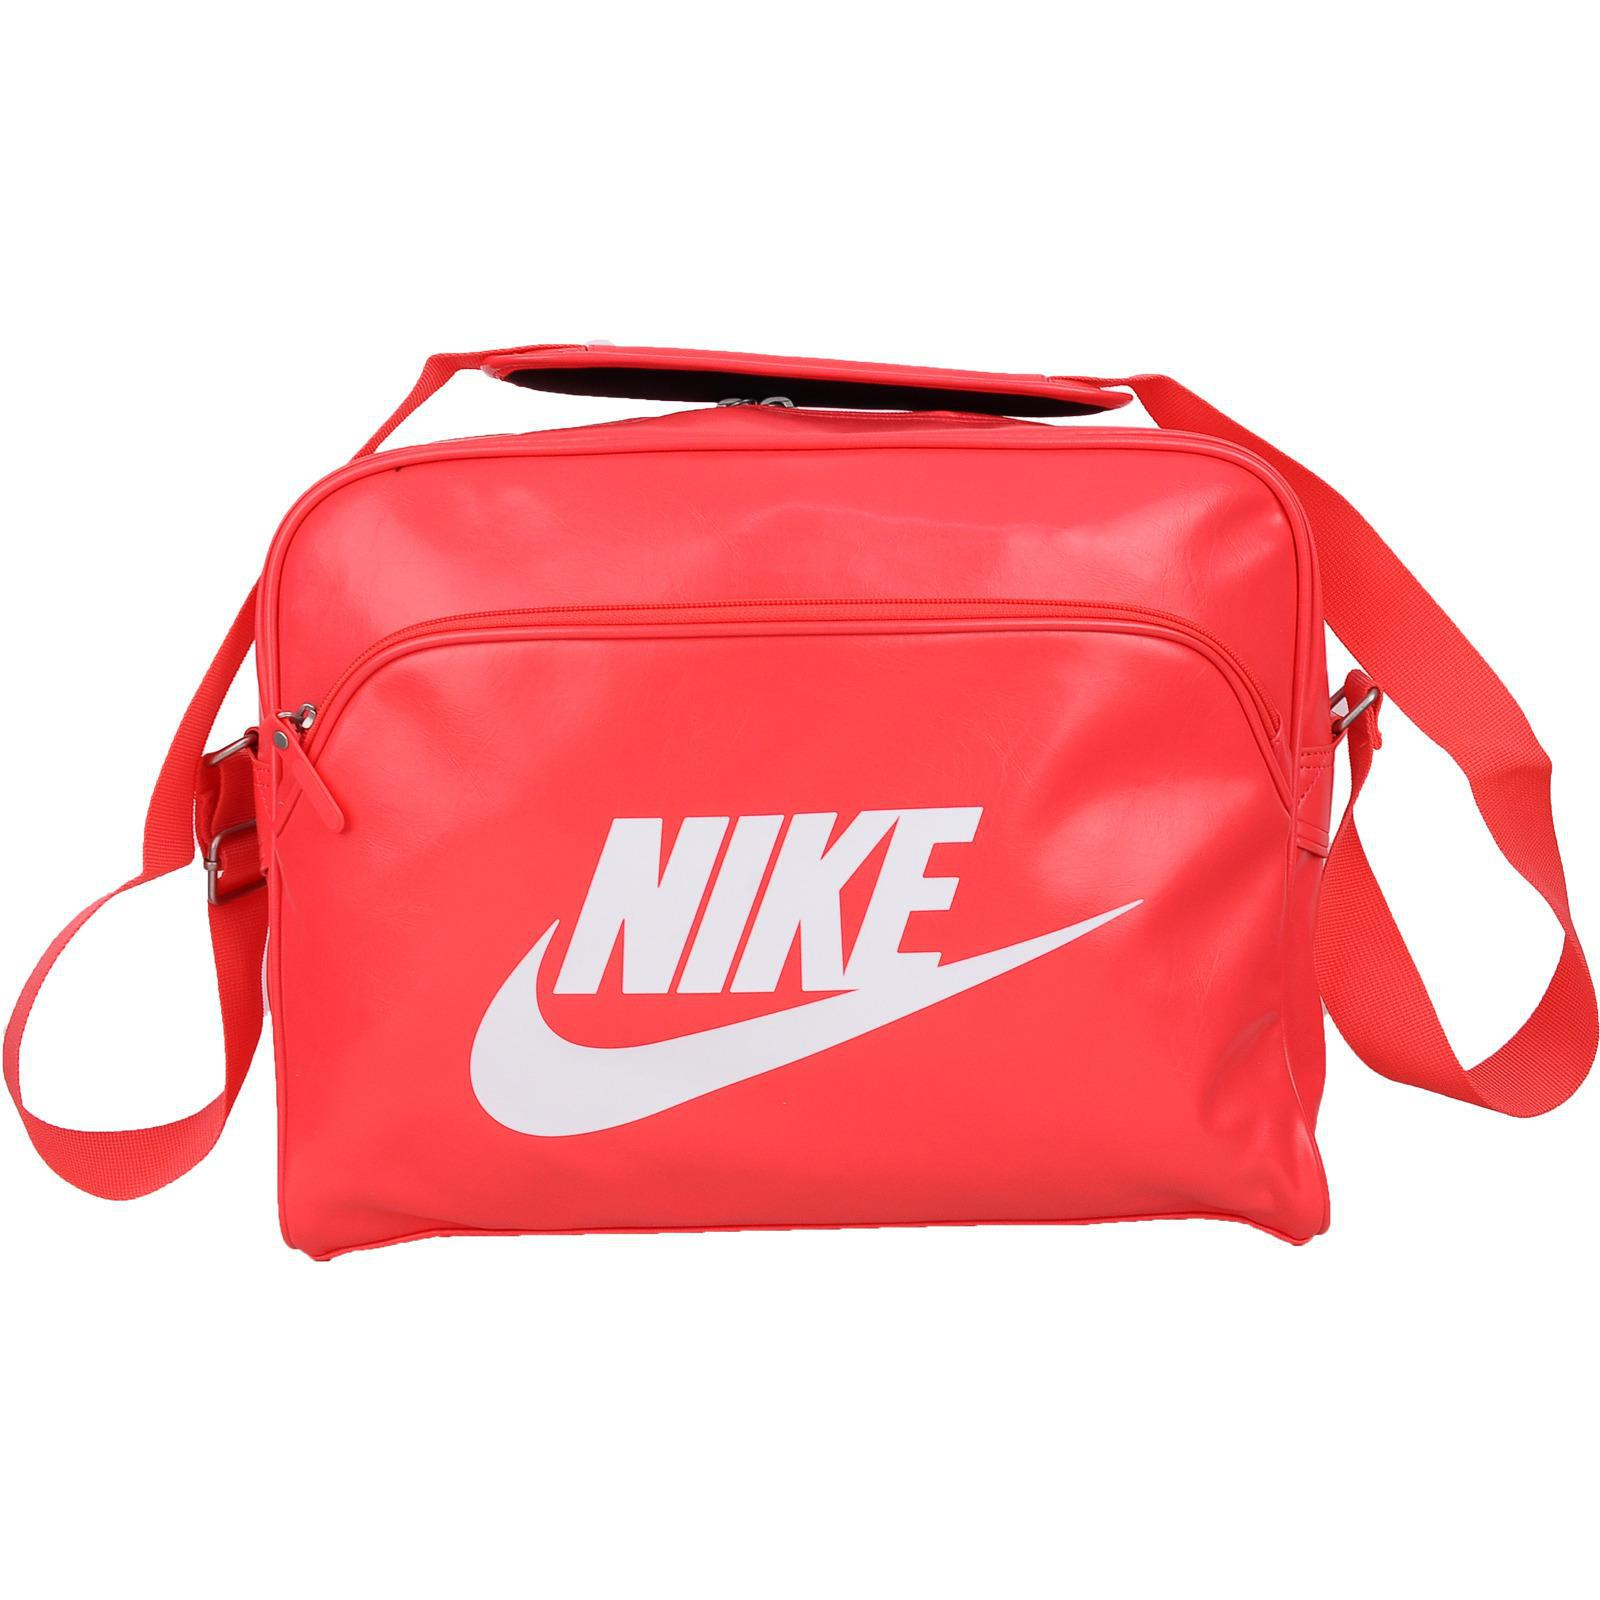 faddce81d4cc Nike Heritage Shoulder Bag - Red - Tennisnuts.com